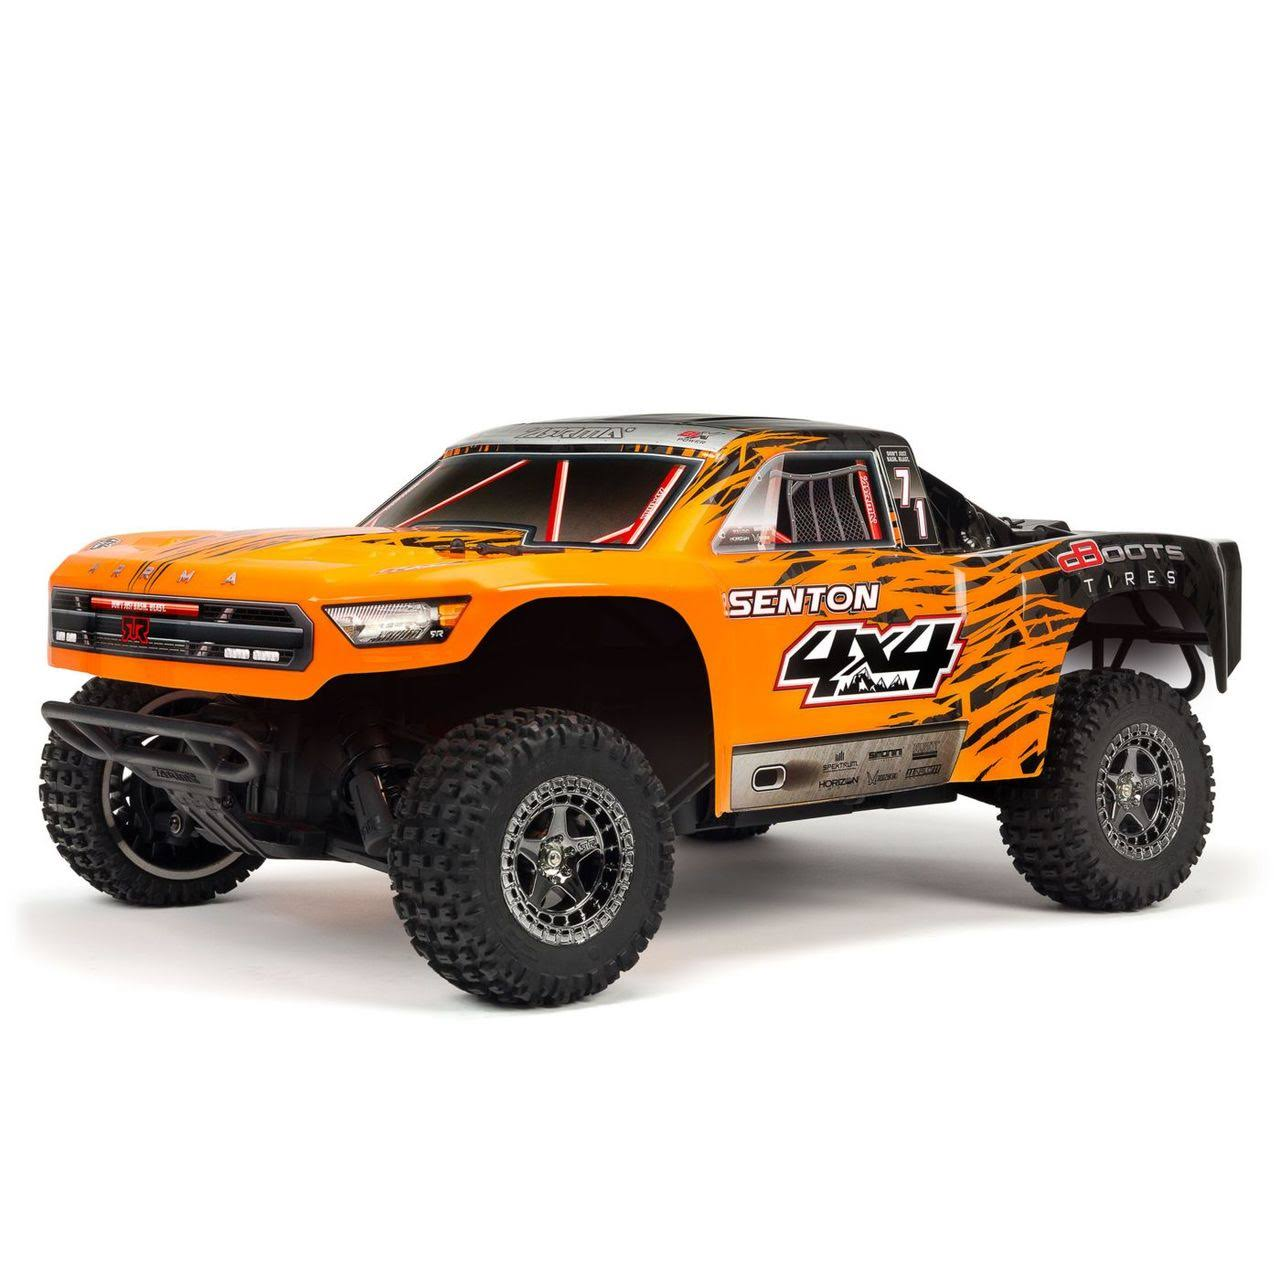 Arrma 102721T2 - 1/10 Senton 4x4 3S BLX 4WD SC Orange/Black